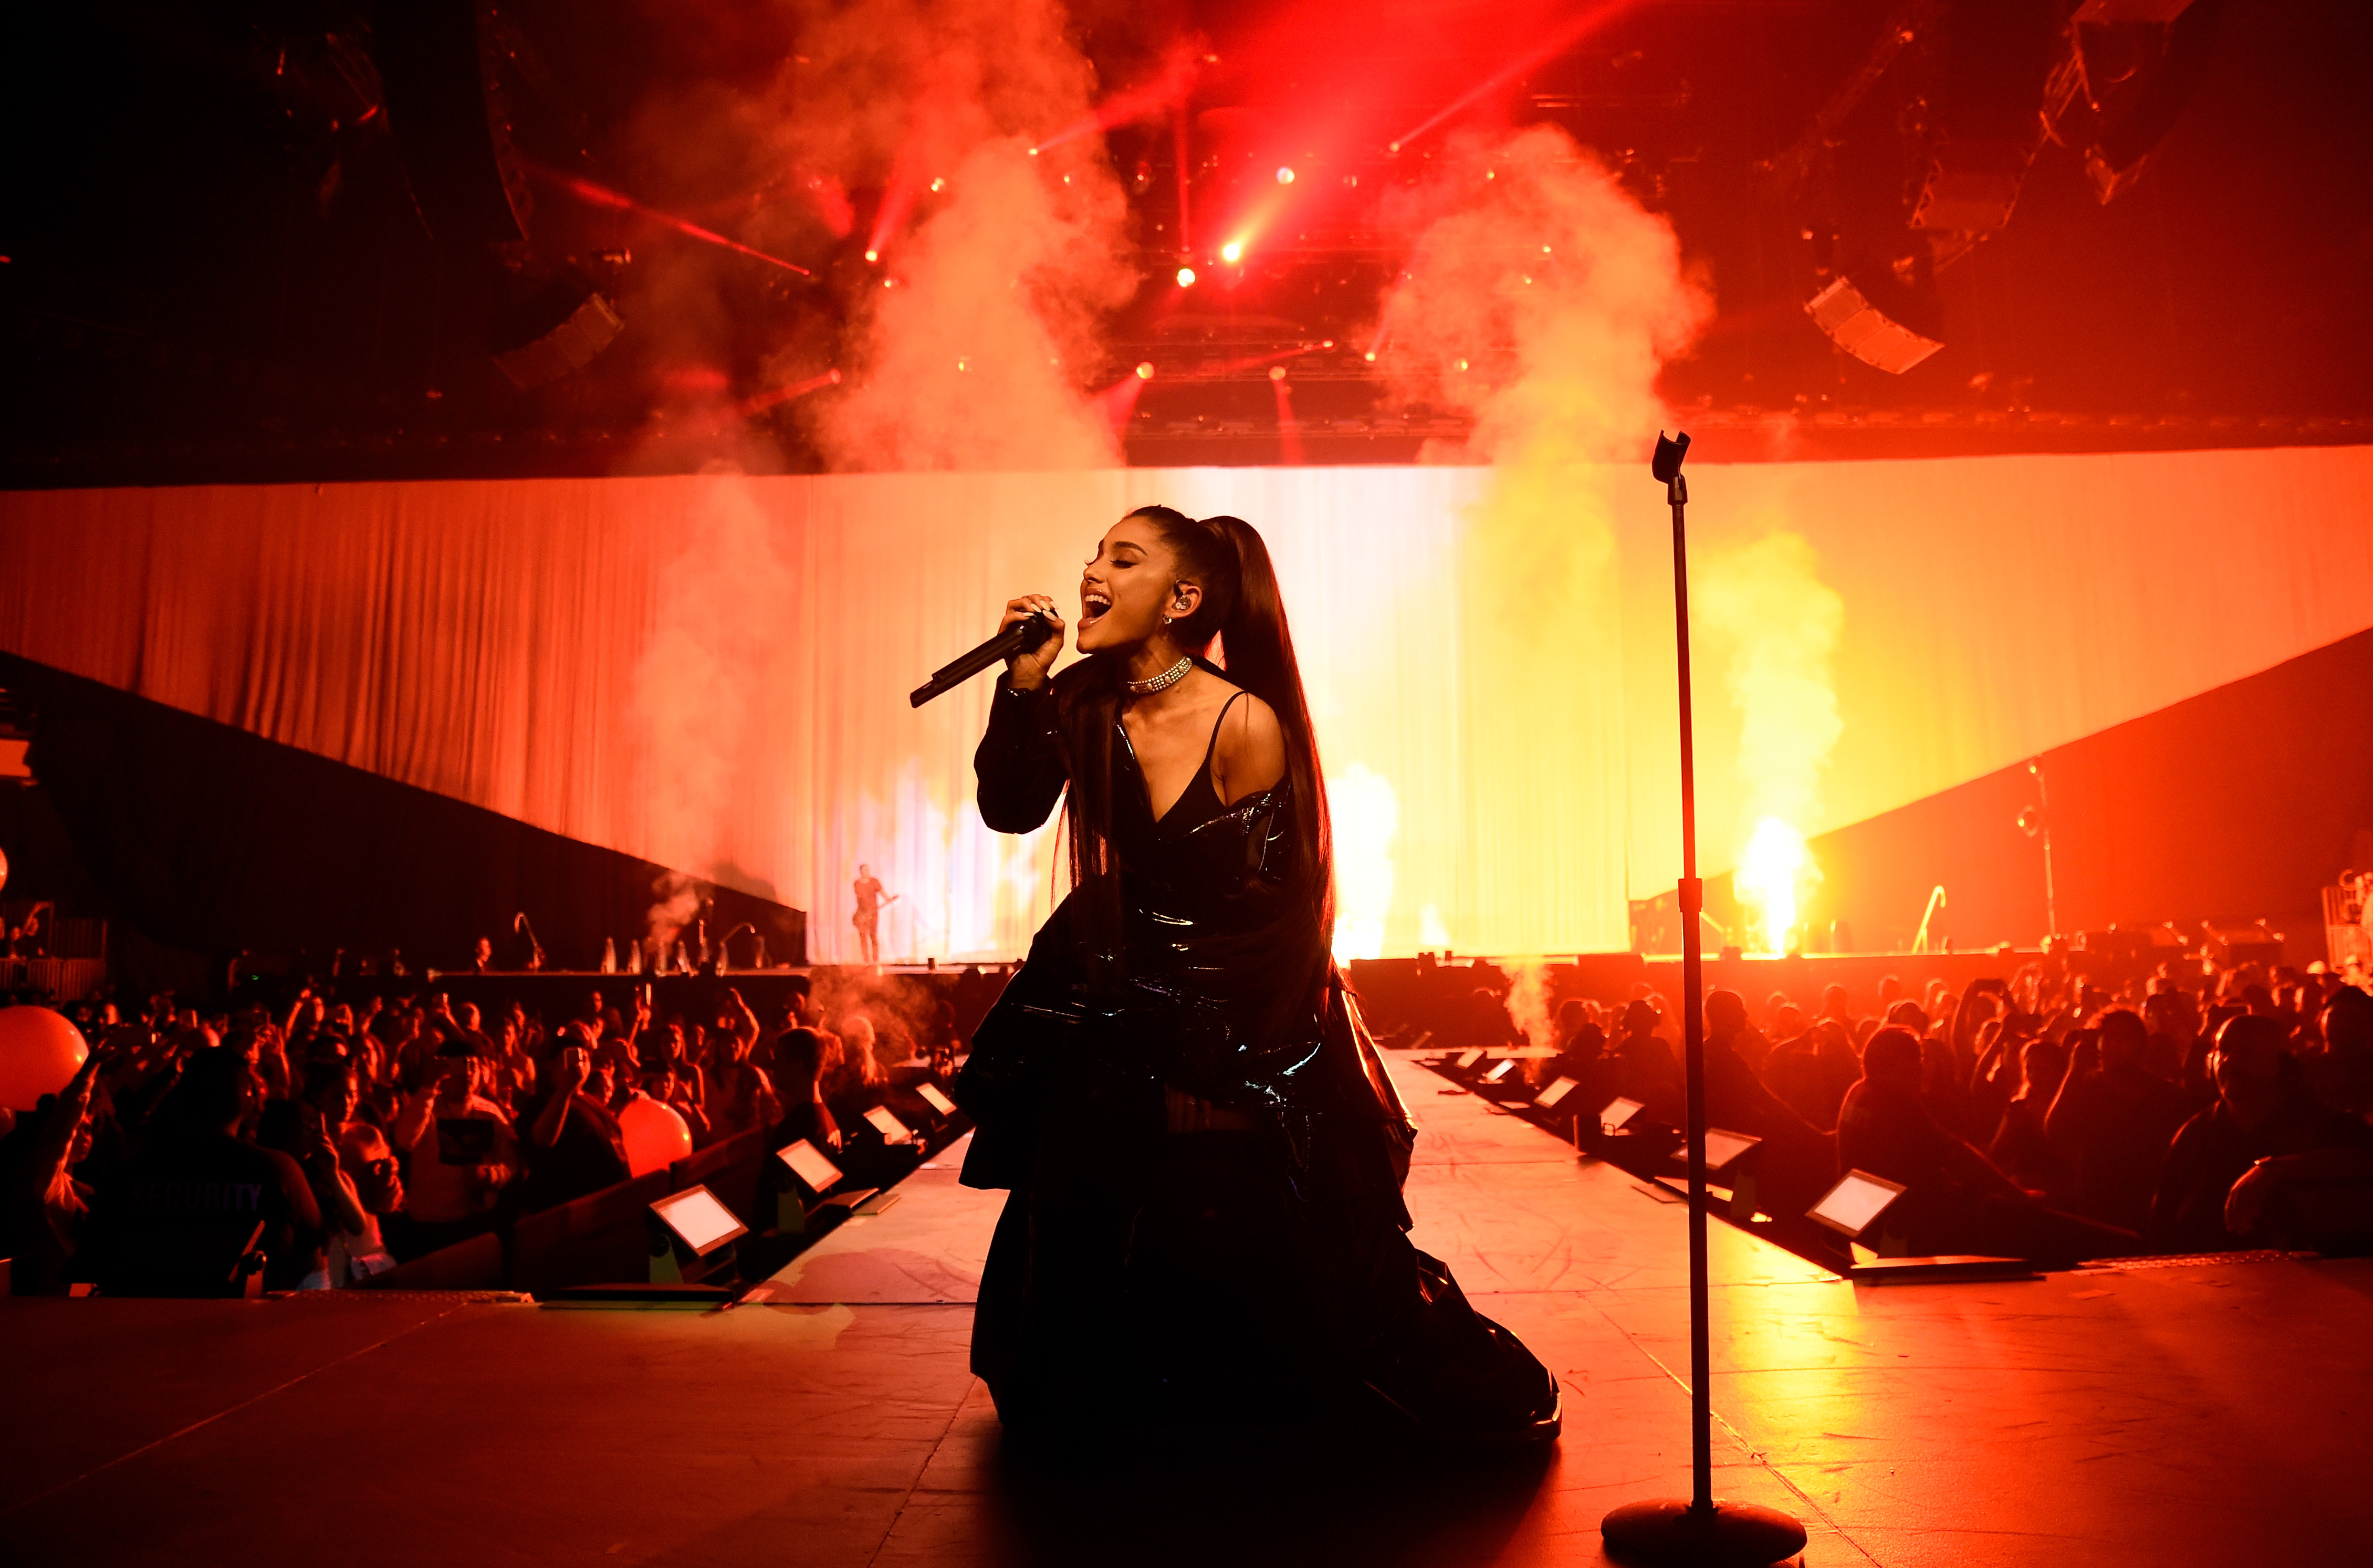 Ariana Grande performs on stage during the  Dangerous Woman  Tour Opener at Talking Stick Resort Arena on February 3, 2017 in Phoenix, Arizona.